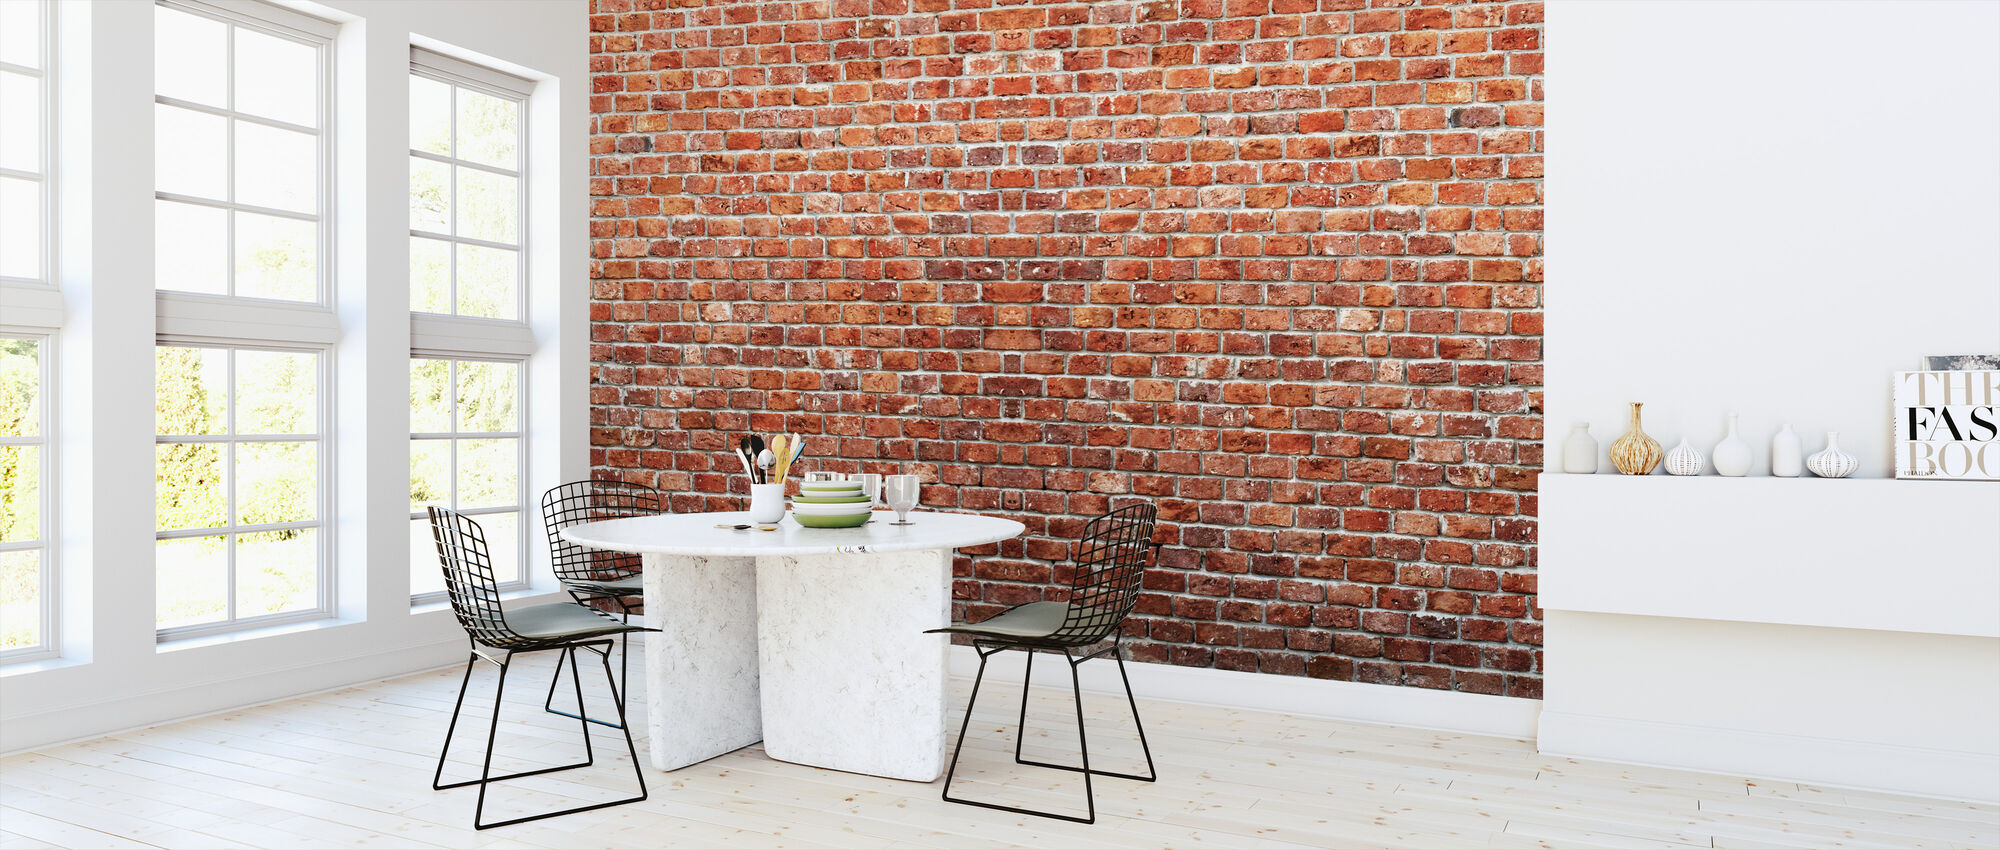 Brick Wall - Wallpaper - Kitchen